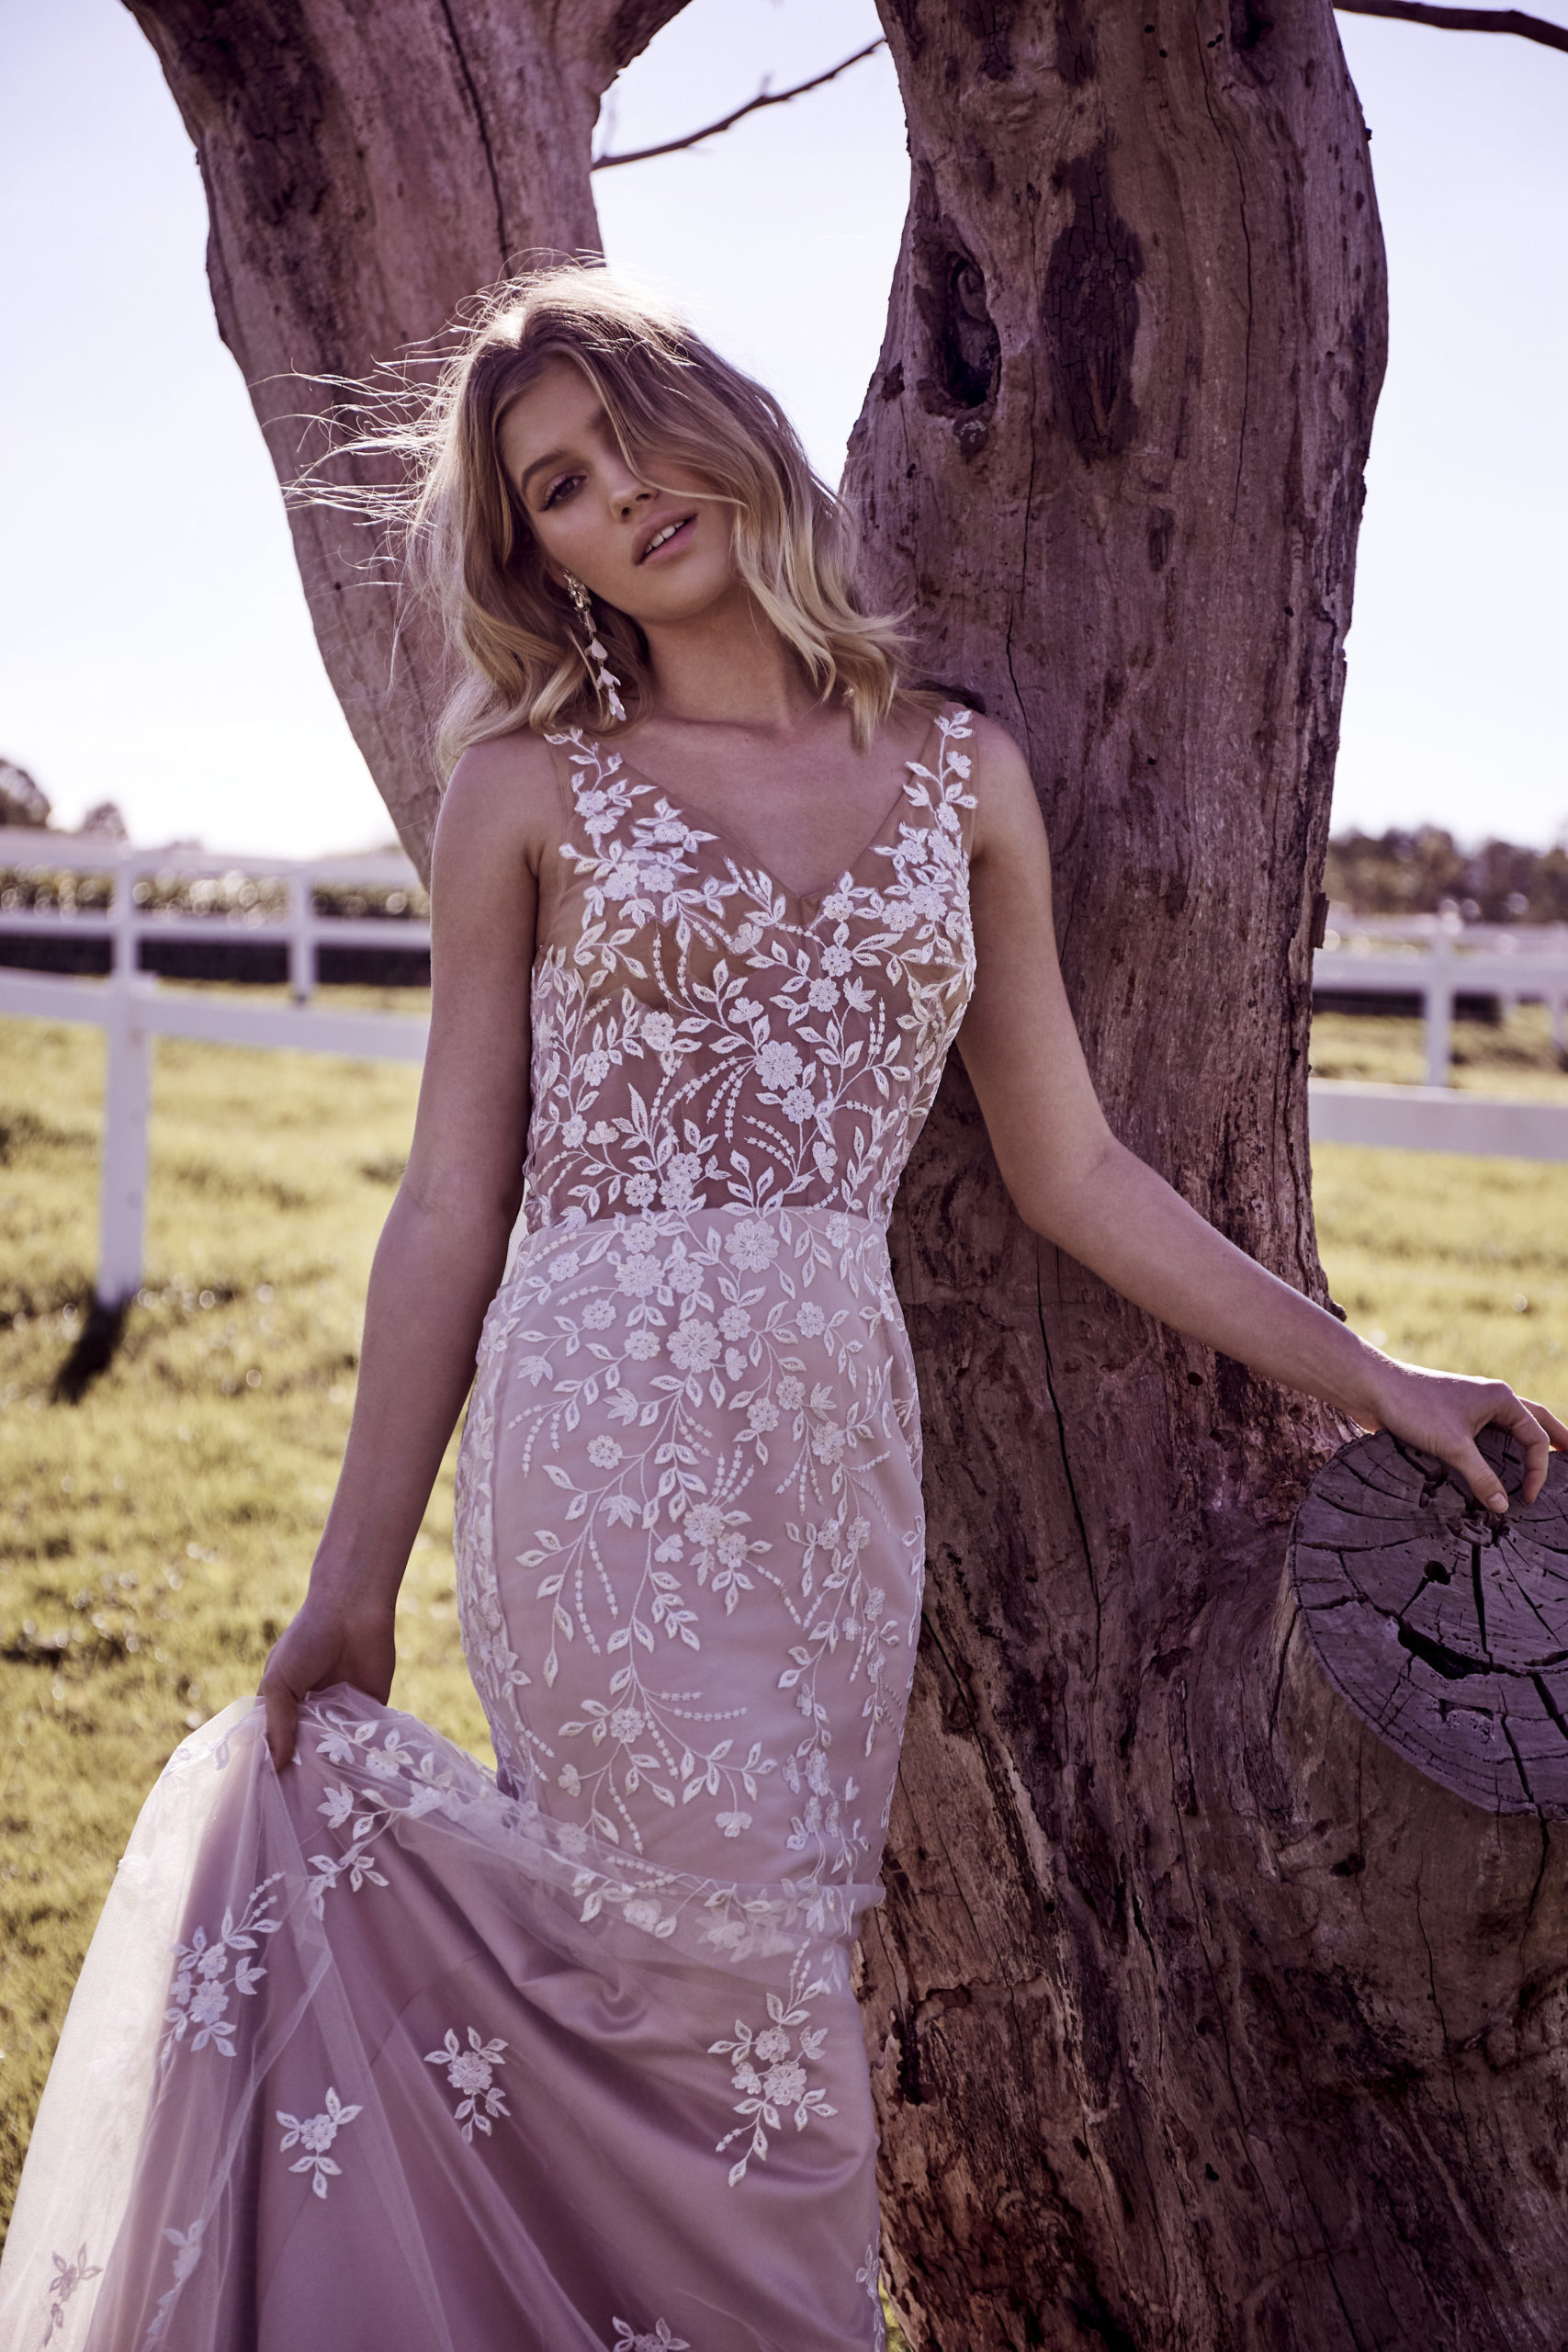 Wedding Dresses - White Embroided Wedding Dress Leaning on a Tree